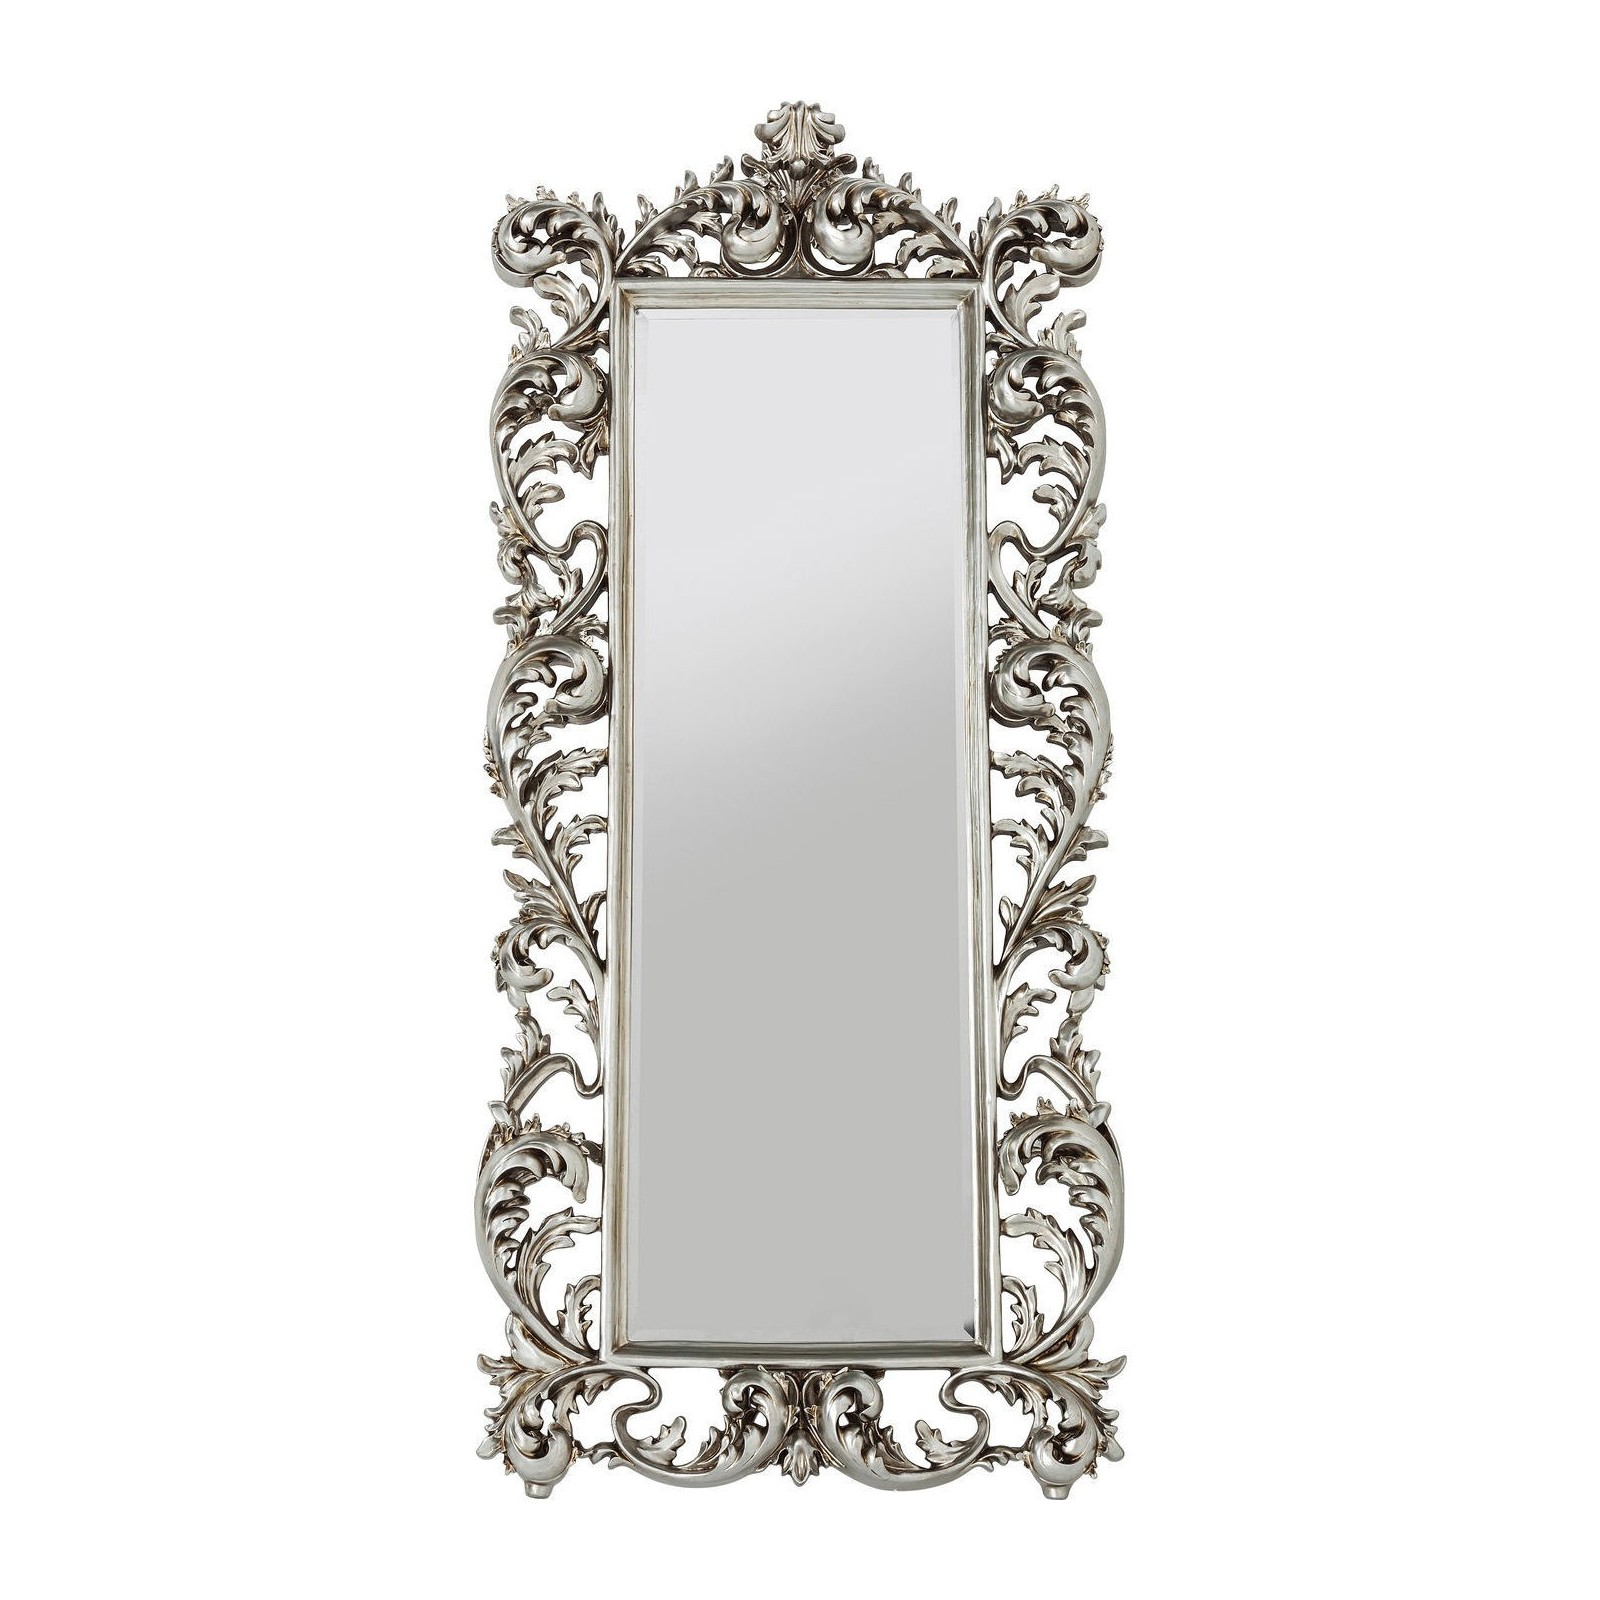 Miroir sun king rectangulaire argent 190x90cm kare design for Miroir design argent